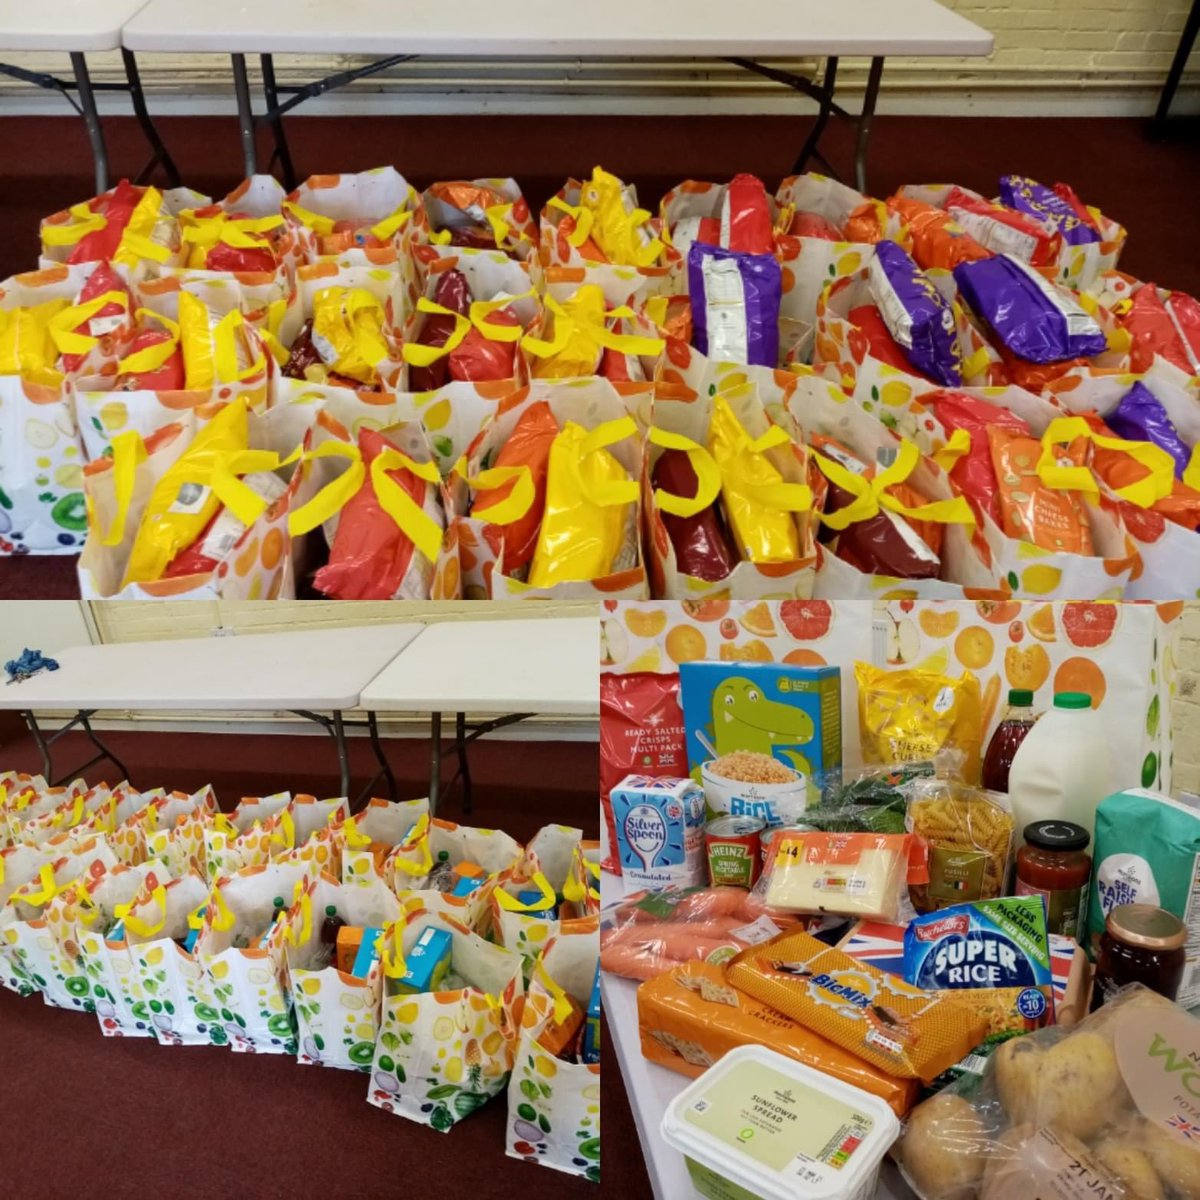 January can feel like the longest monthly can't it. We're proud to support our community and put food in tummies of 60 vulnerable children. BIG THANKS @The_BGL_Group & Ellie @Morrisons for helping us #EndChildFoodPoverty #EndFoodPoverty #ProudOfPeterborough